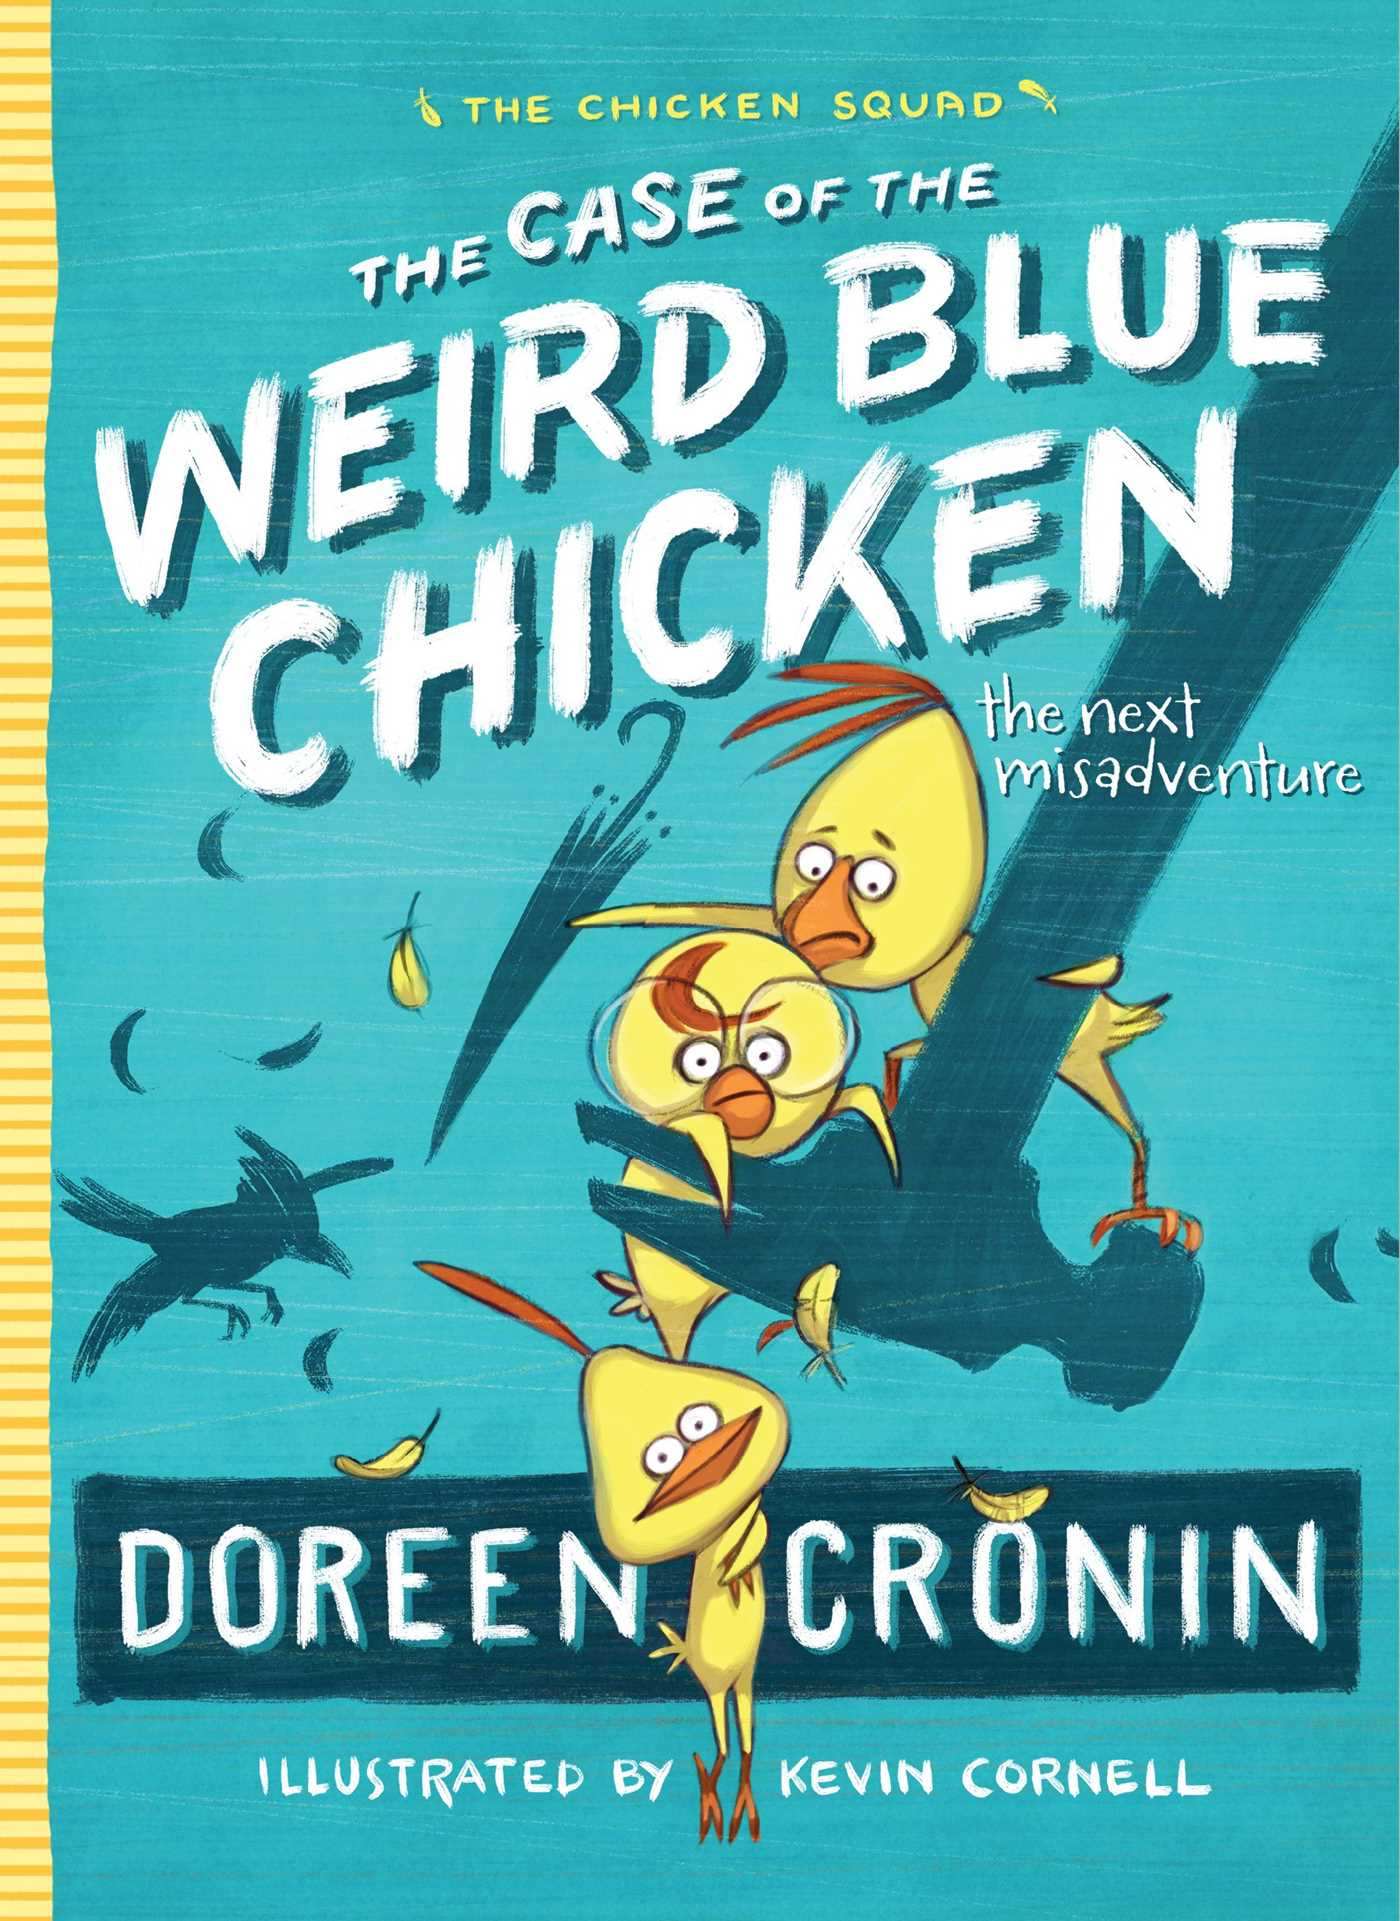 Case-of-the-weird-blue-chicken-9781442496798_hr